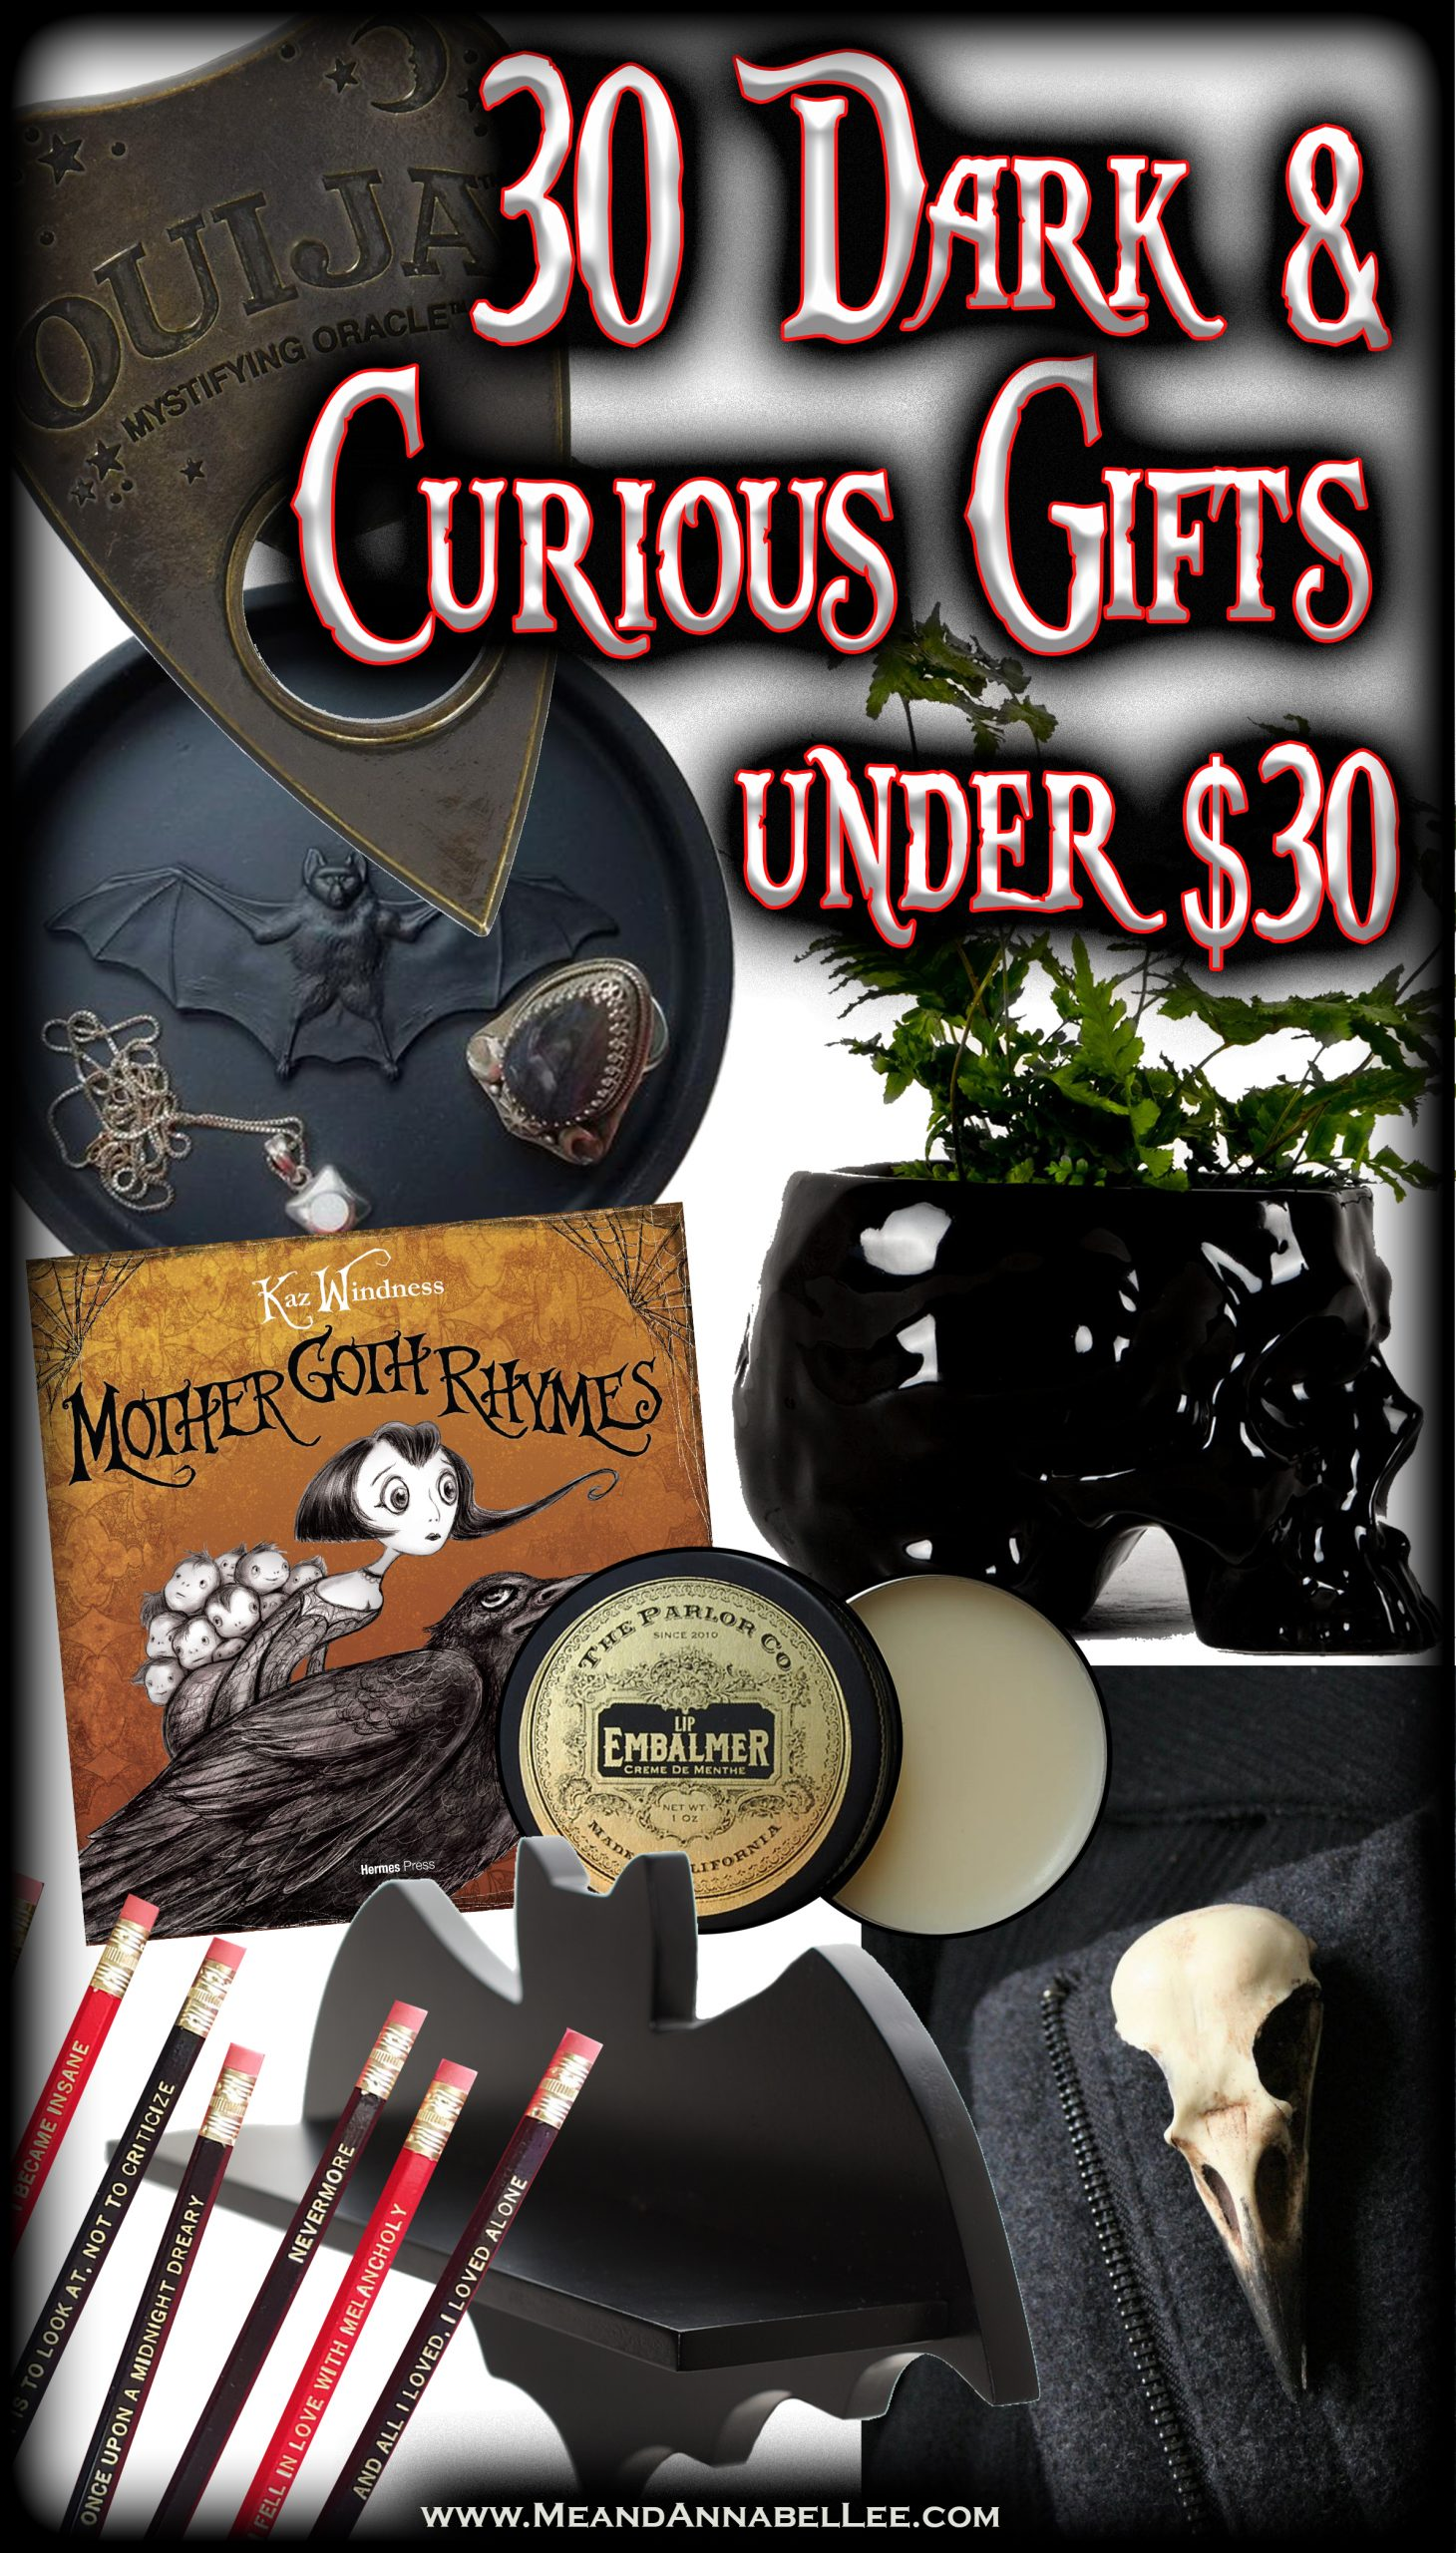 Macabre Unusual Gothic Gift Ideas Under 30 Me And Annabel Lee